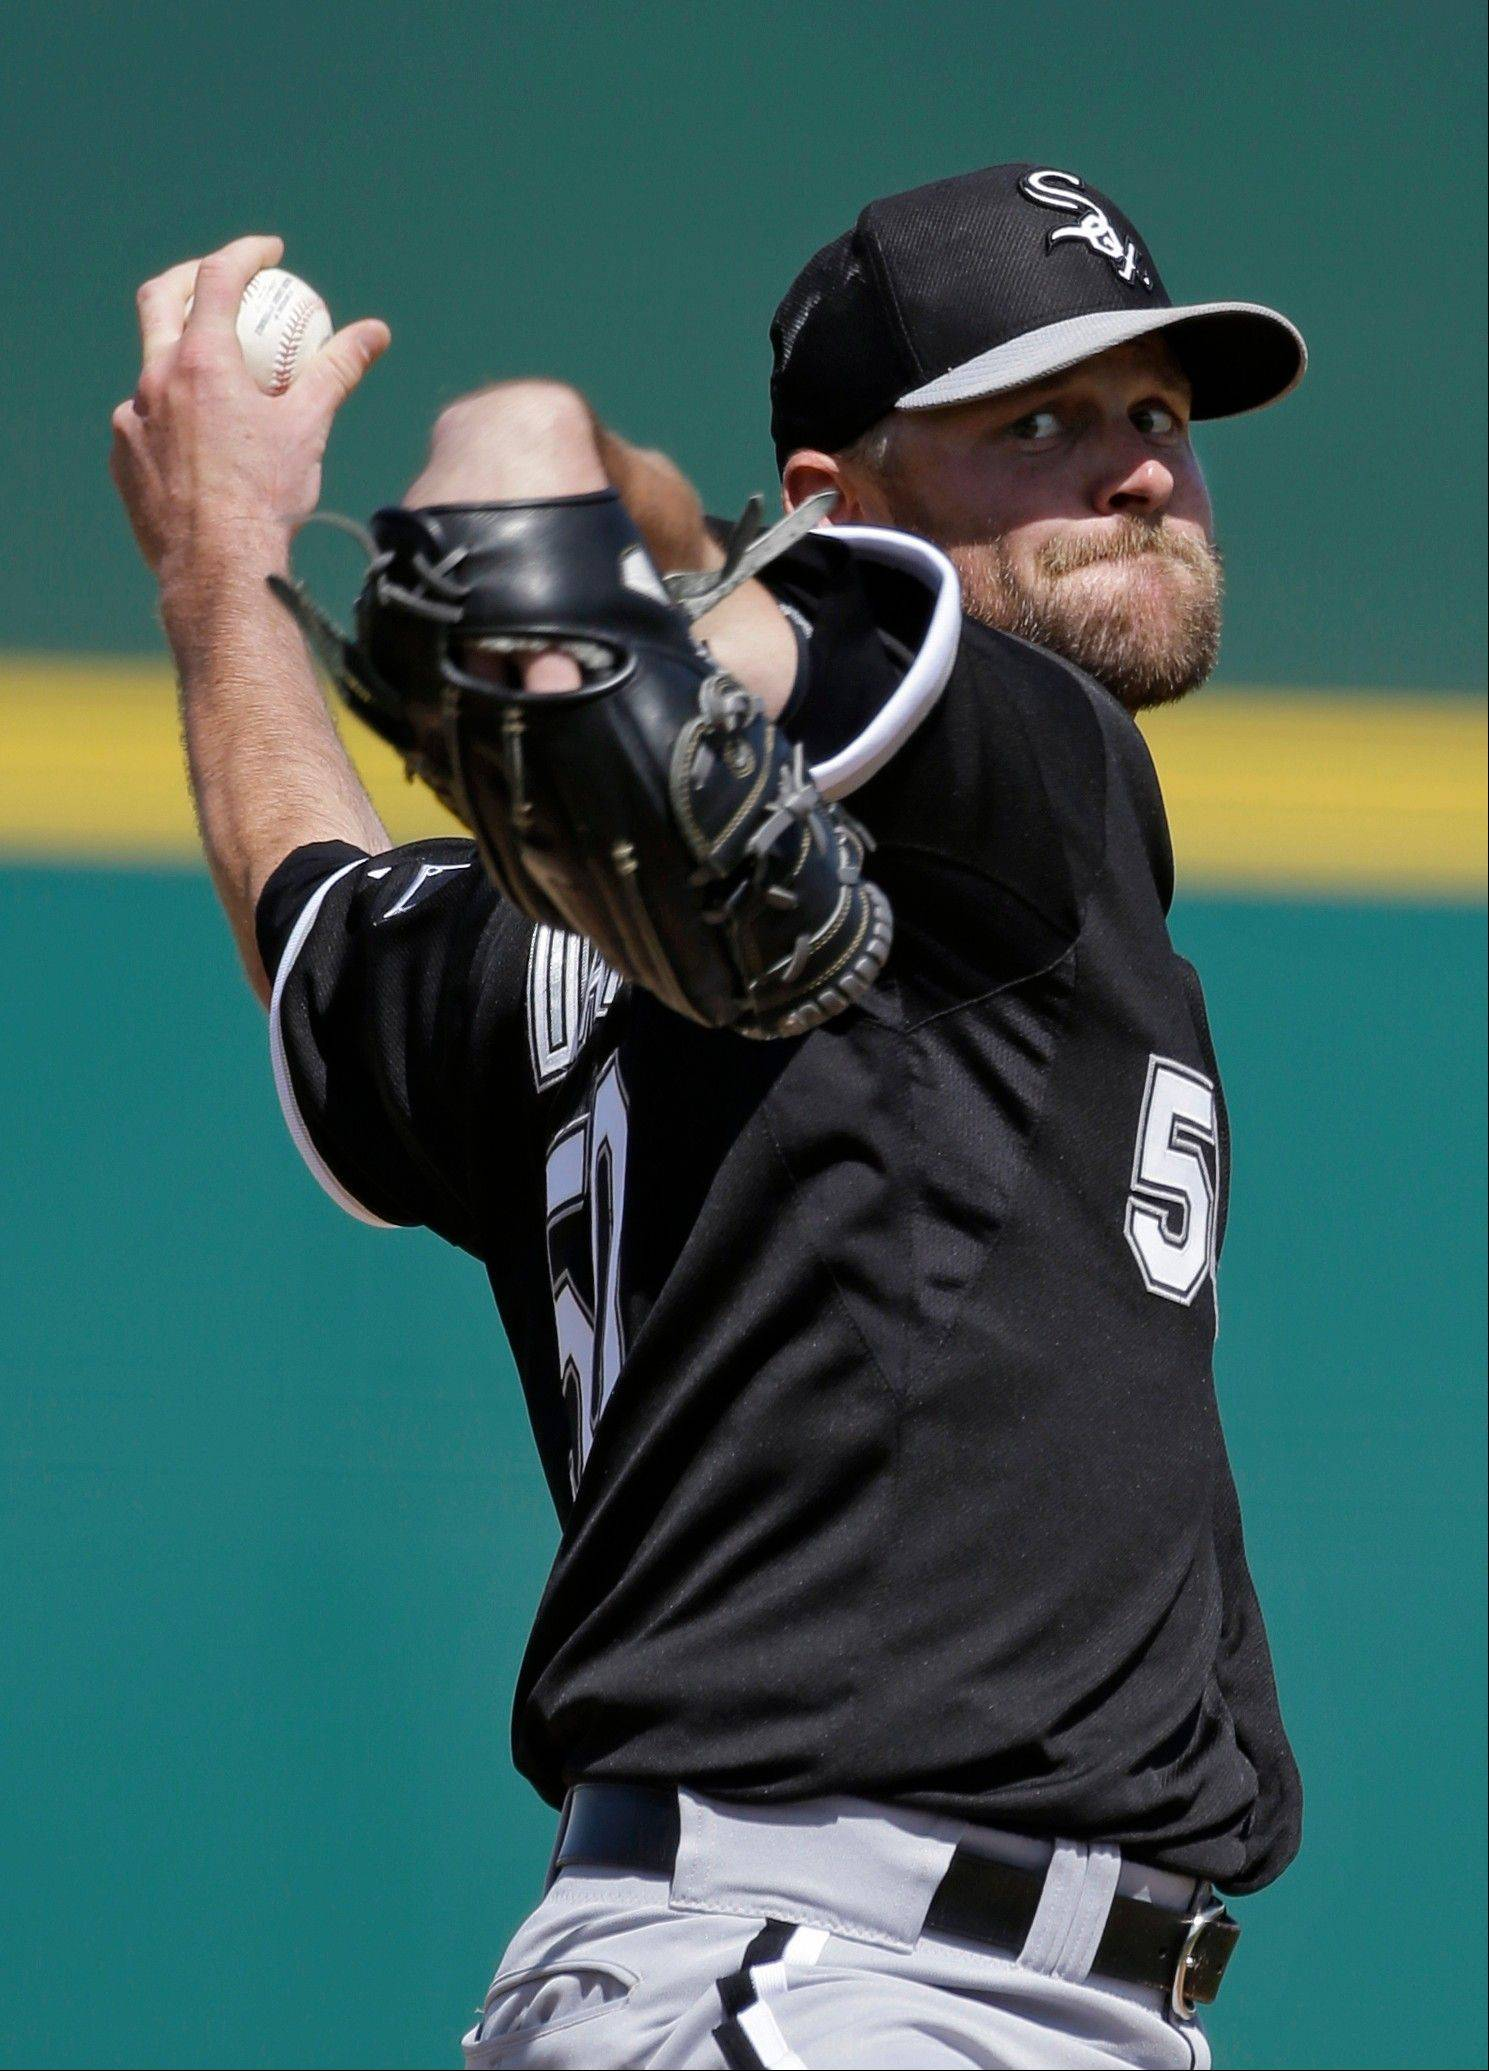 Starting to look iffy for White Sox' Danks